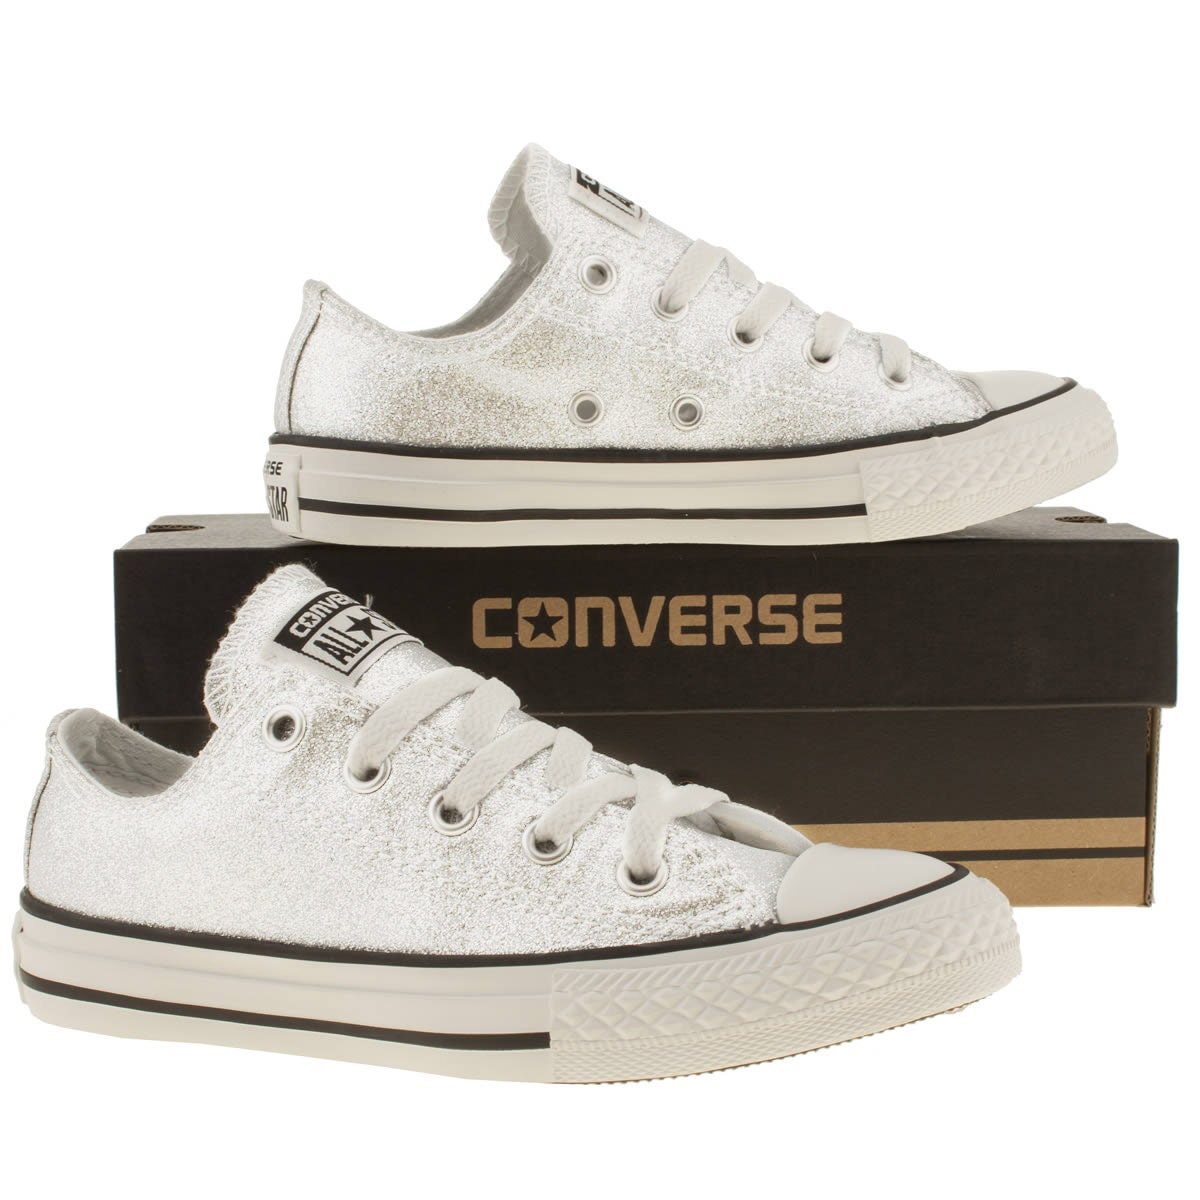 converse shoes converse white glitter wedding converse low top. Black Bedroom Furniture Sets. Home Design Ideas